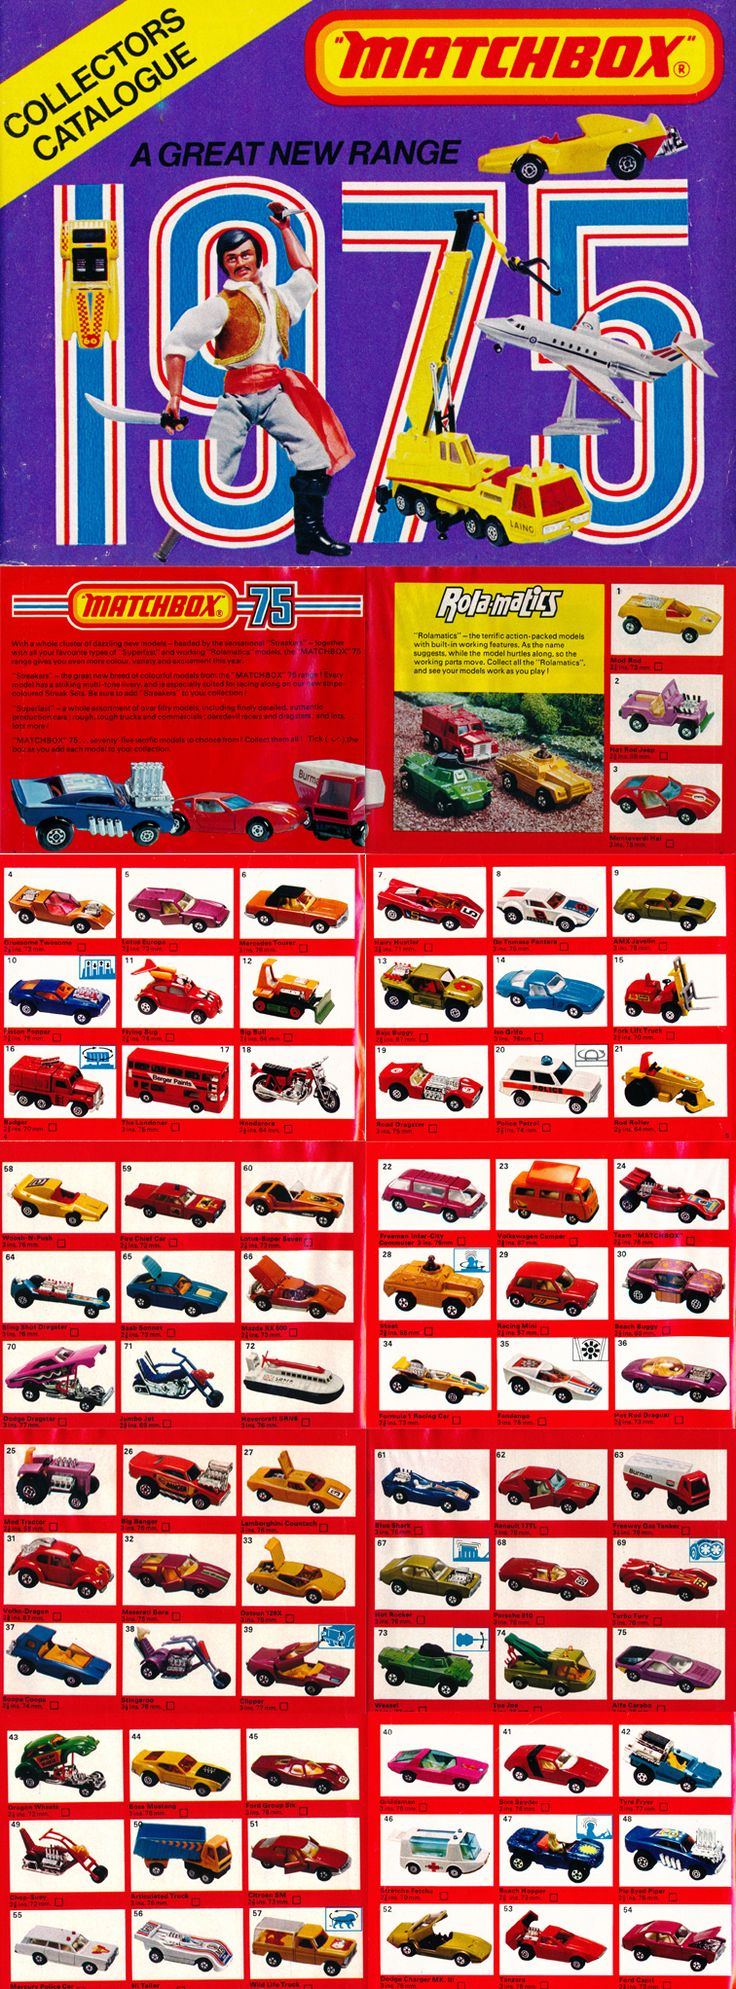 Matchbox catalogue 1975